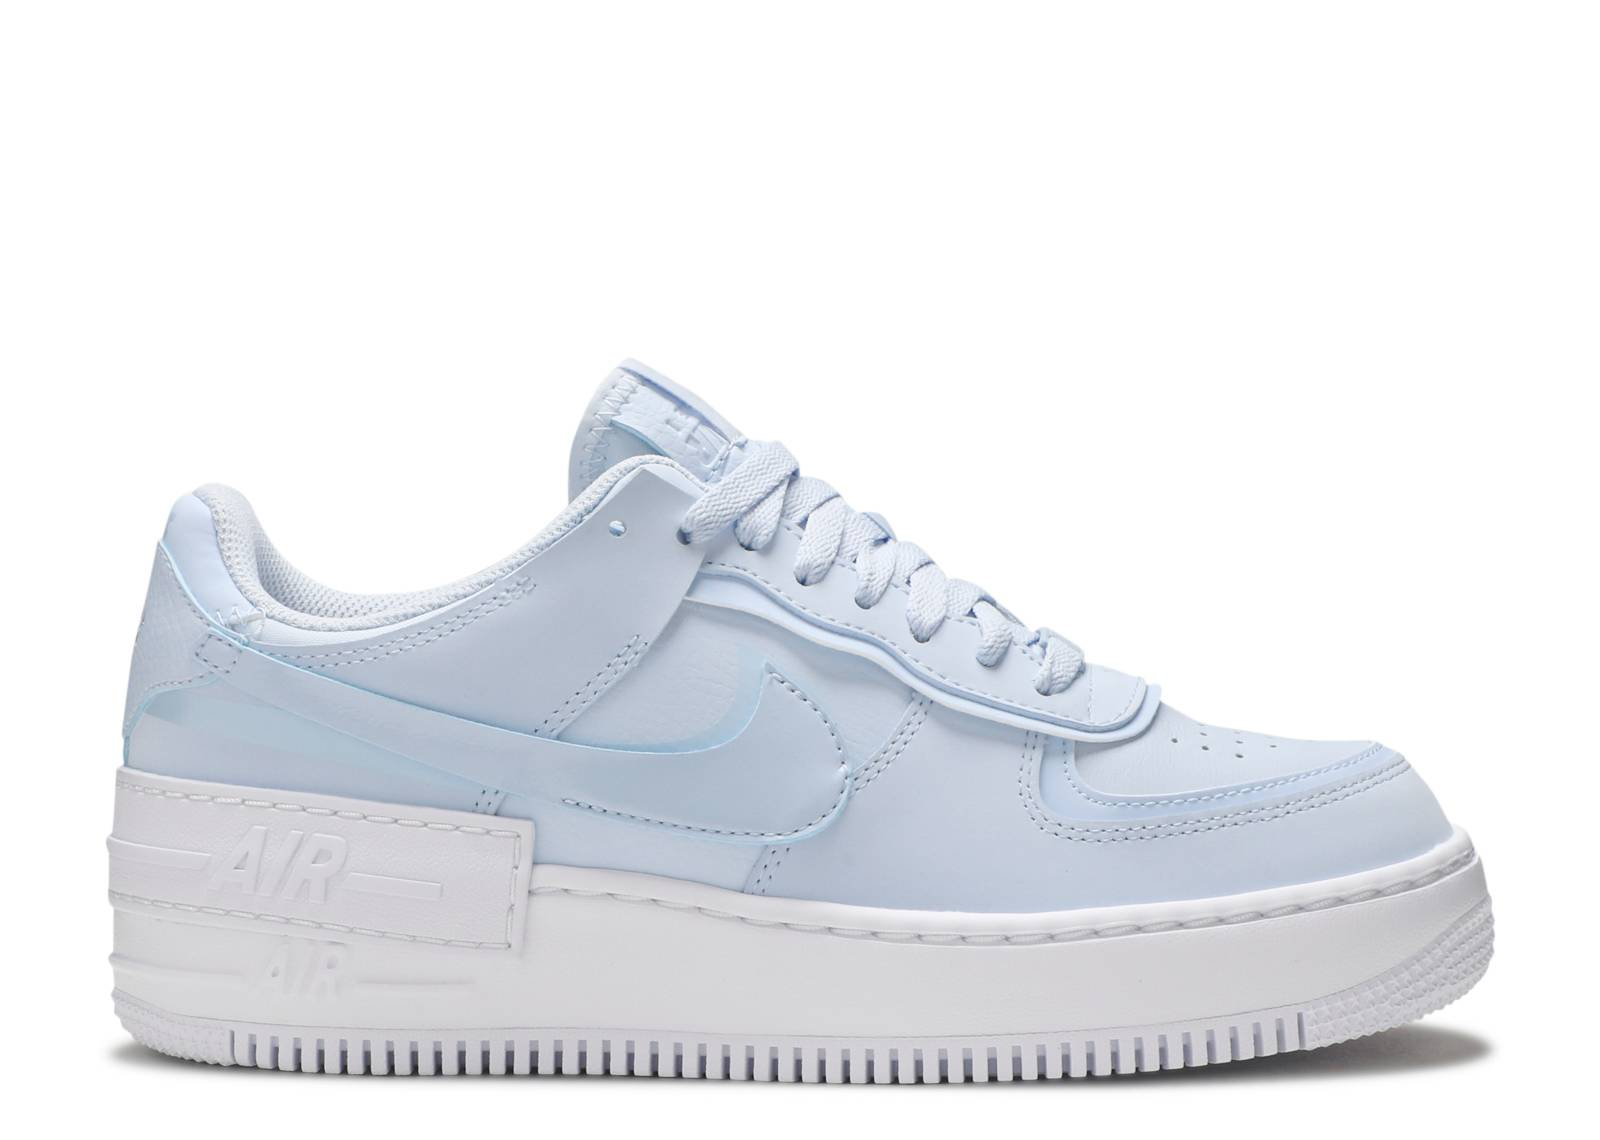 AIR FORCE 1 SHADOW 'HYDROGEN BLUE'